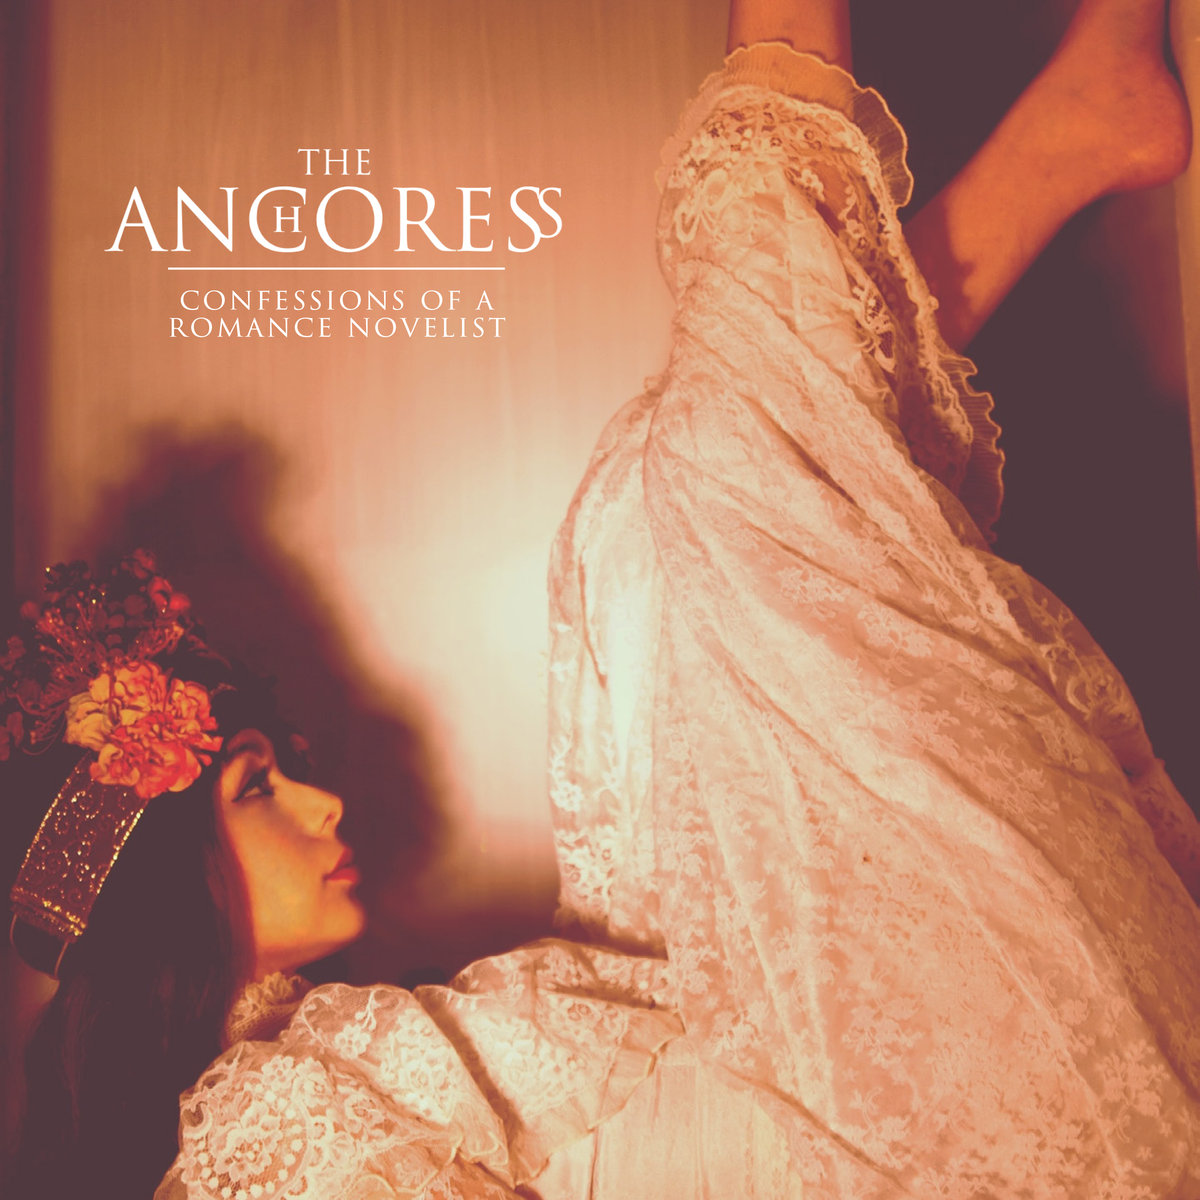 the-anchoress_confessions-of-a-romance-novelist